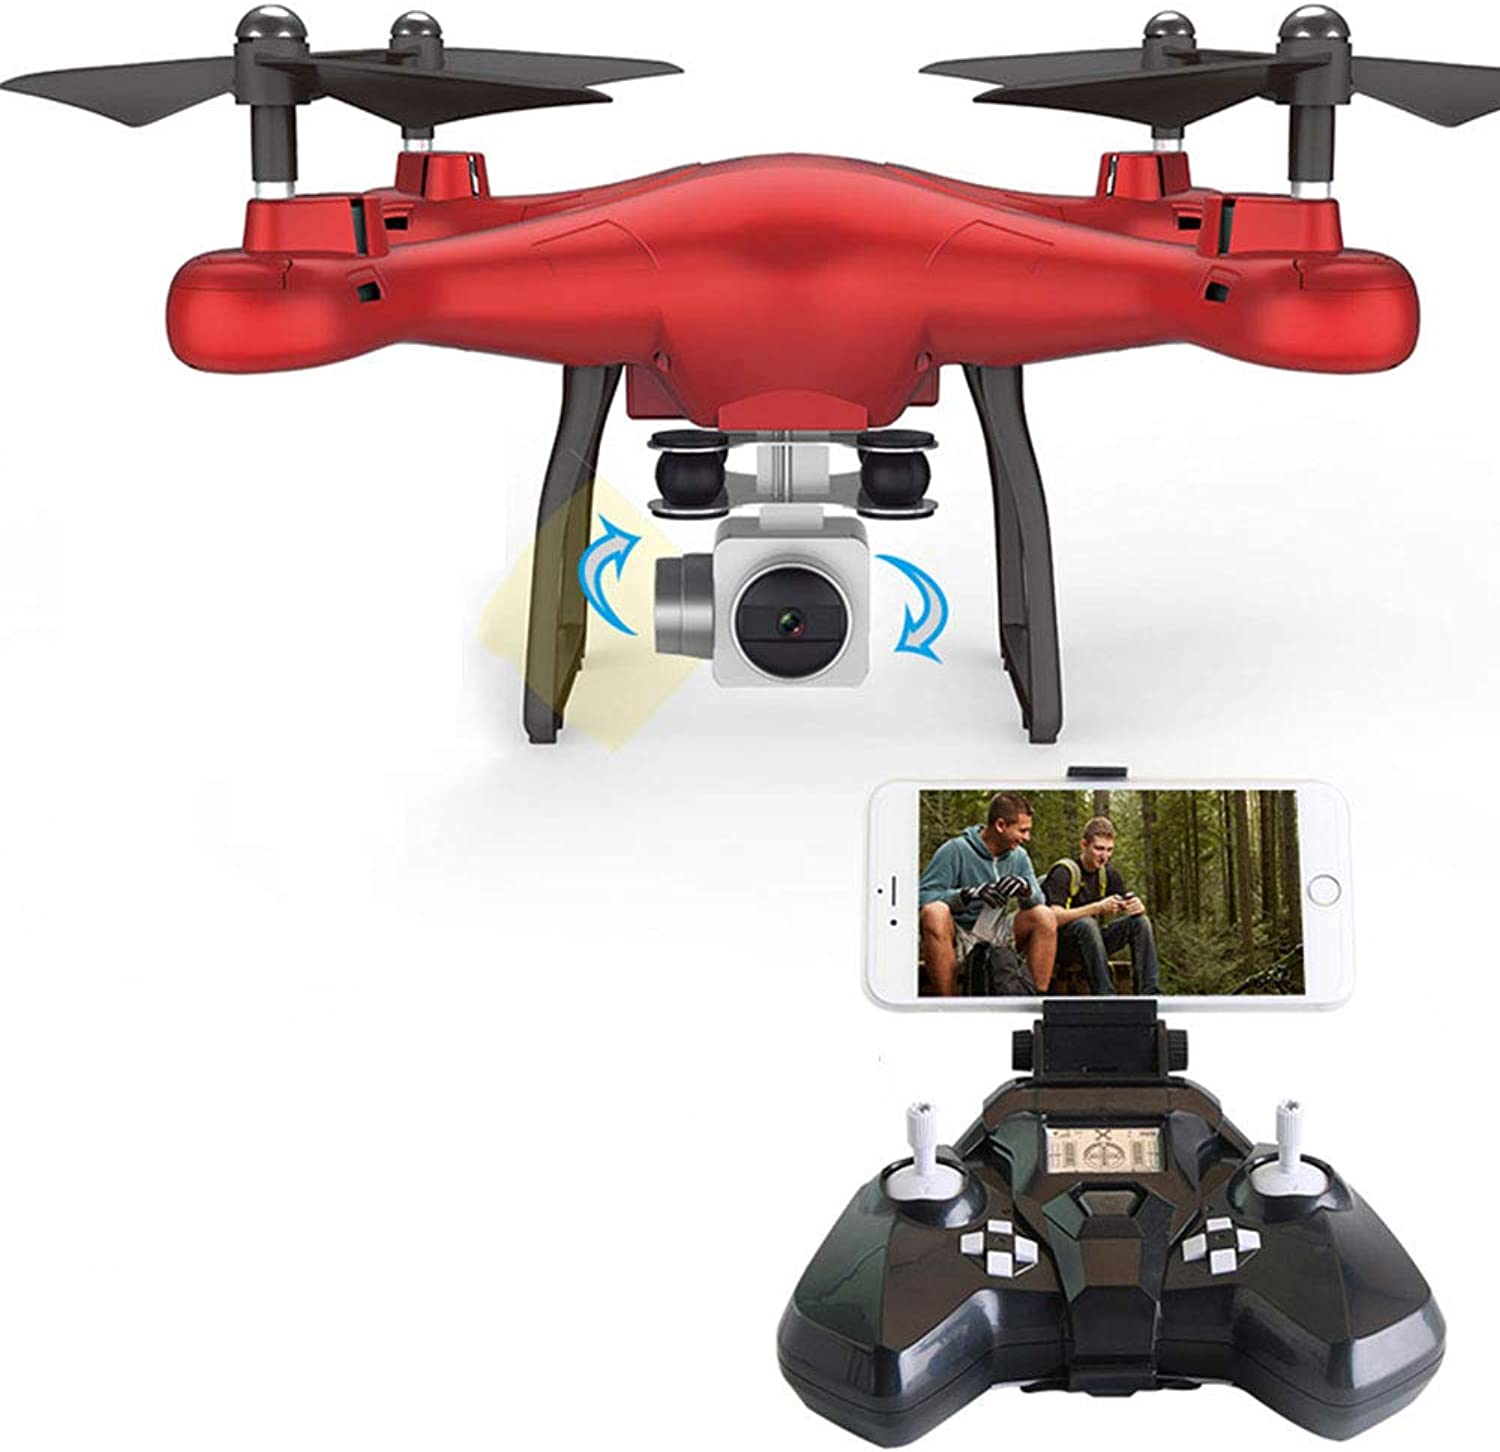 FPV RC drone quadcopter professional 200W HD 720P aerial photography realtime WIFI map transmission Headless Mode One Key Return Trajectory Flight,Red